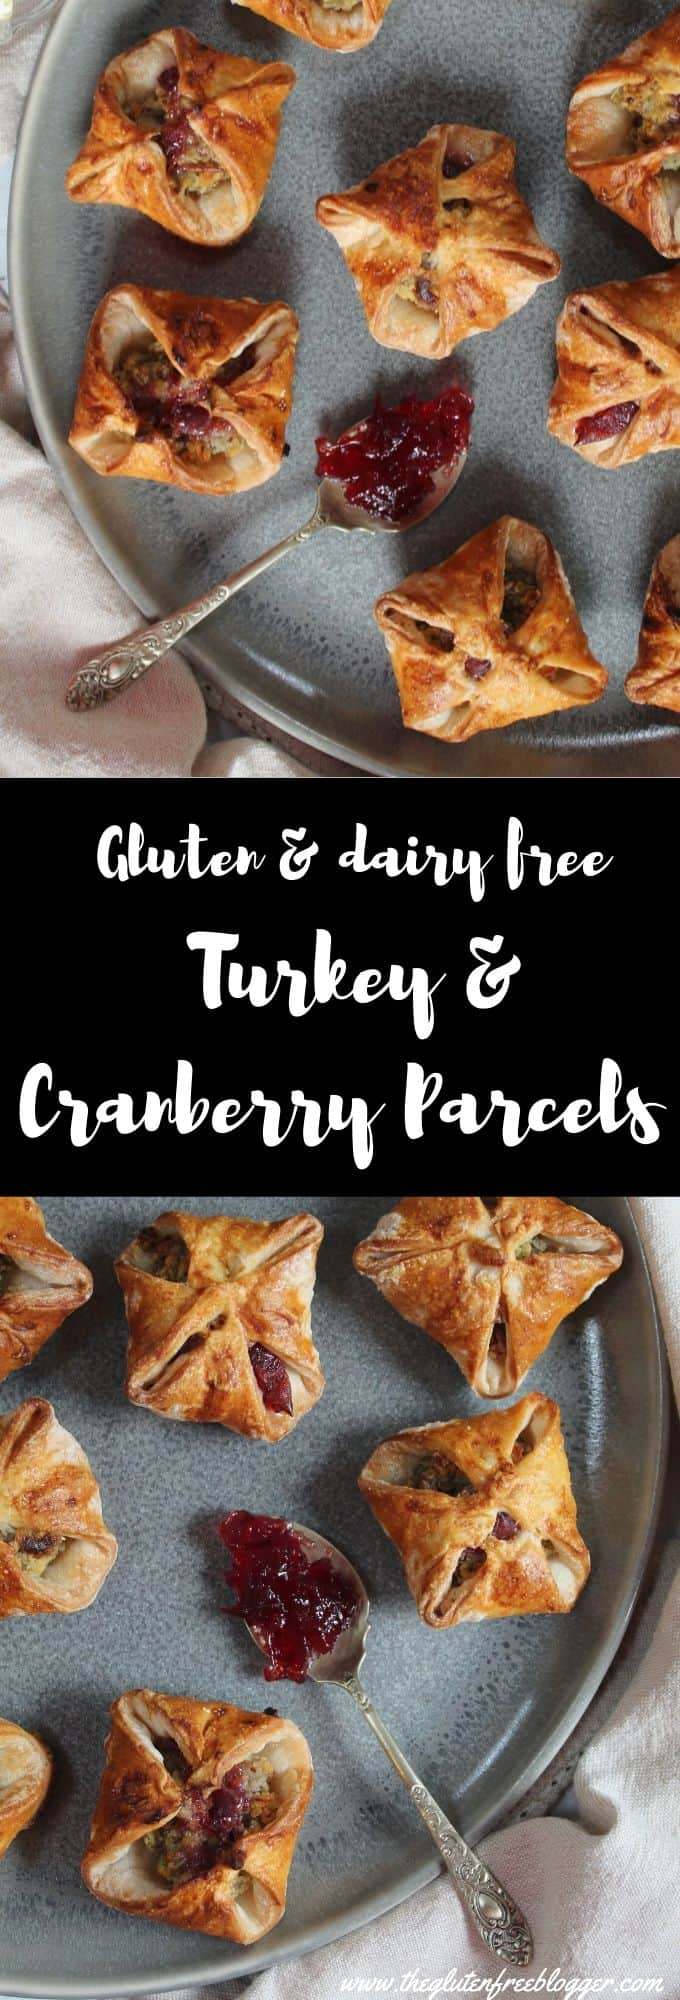 gluten free turkey and cranberry parcels - dairy free christmas party food ideas and recipes